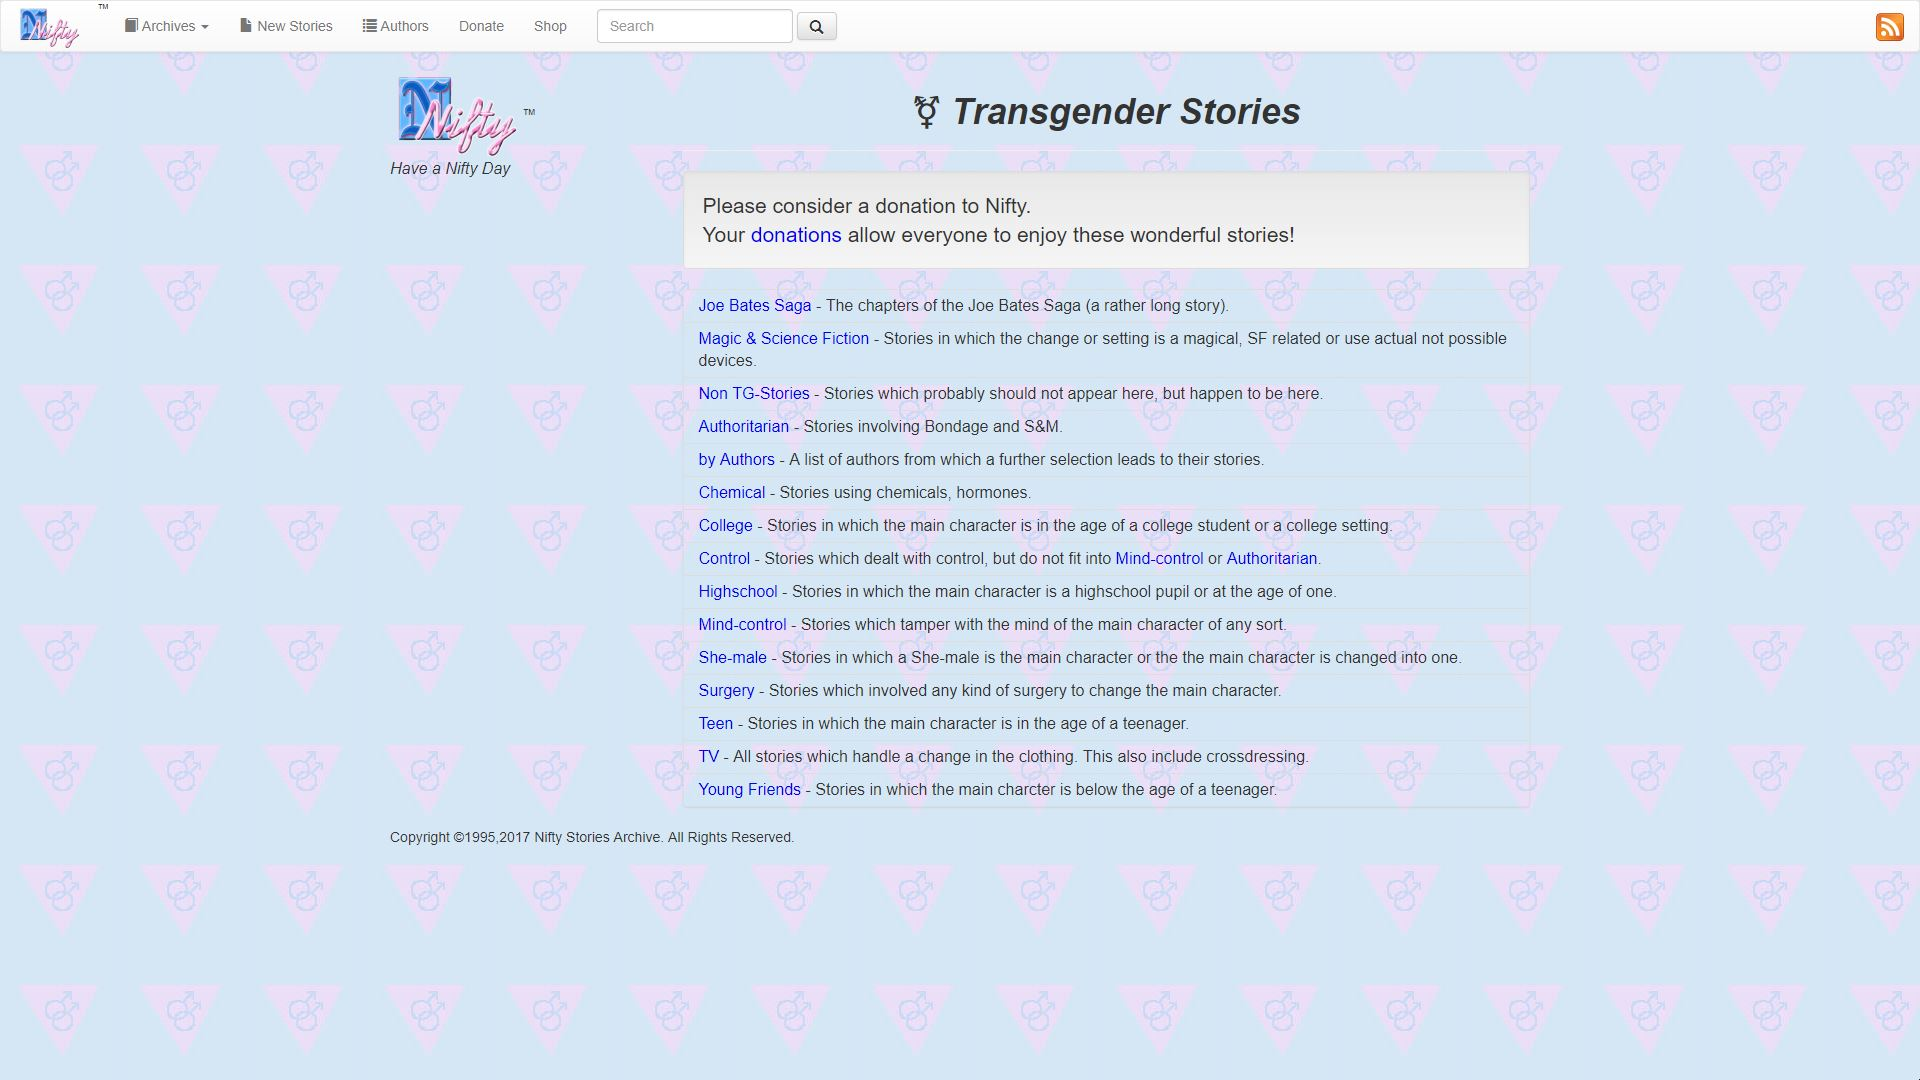 Nifty Transgender Stories